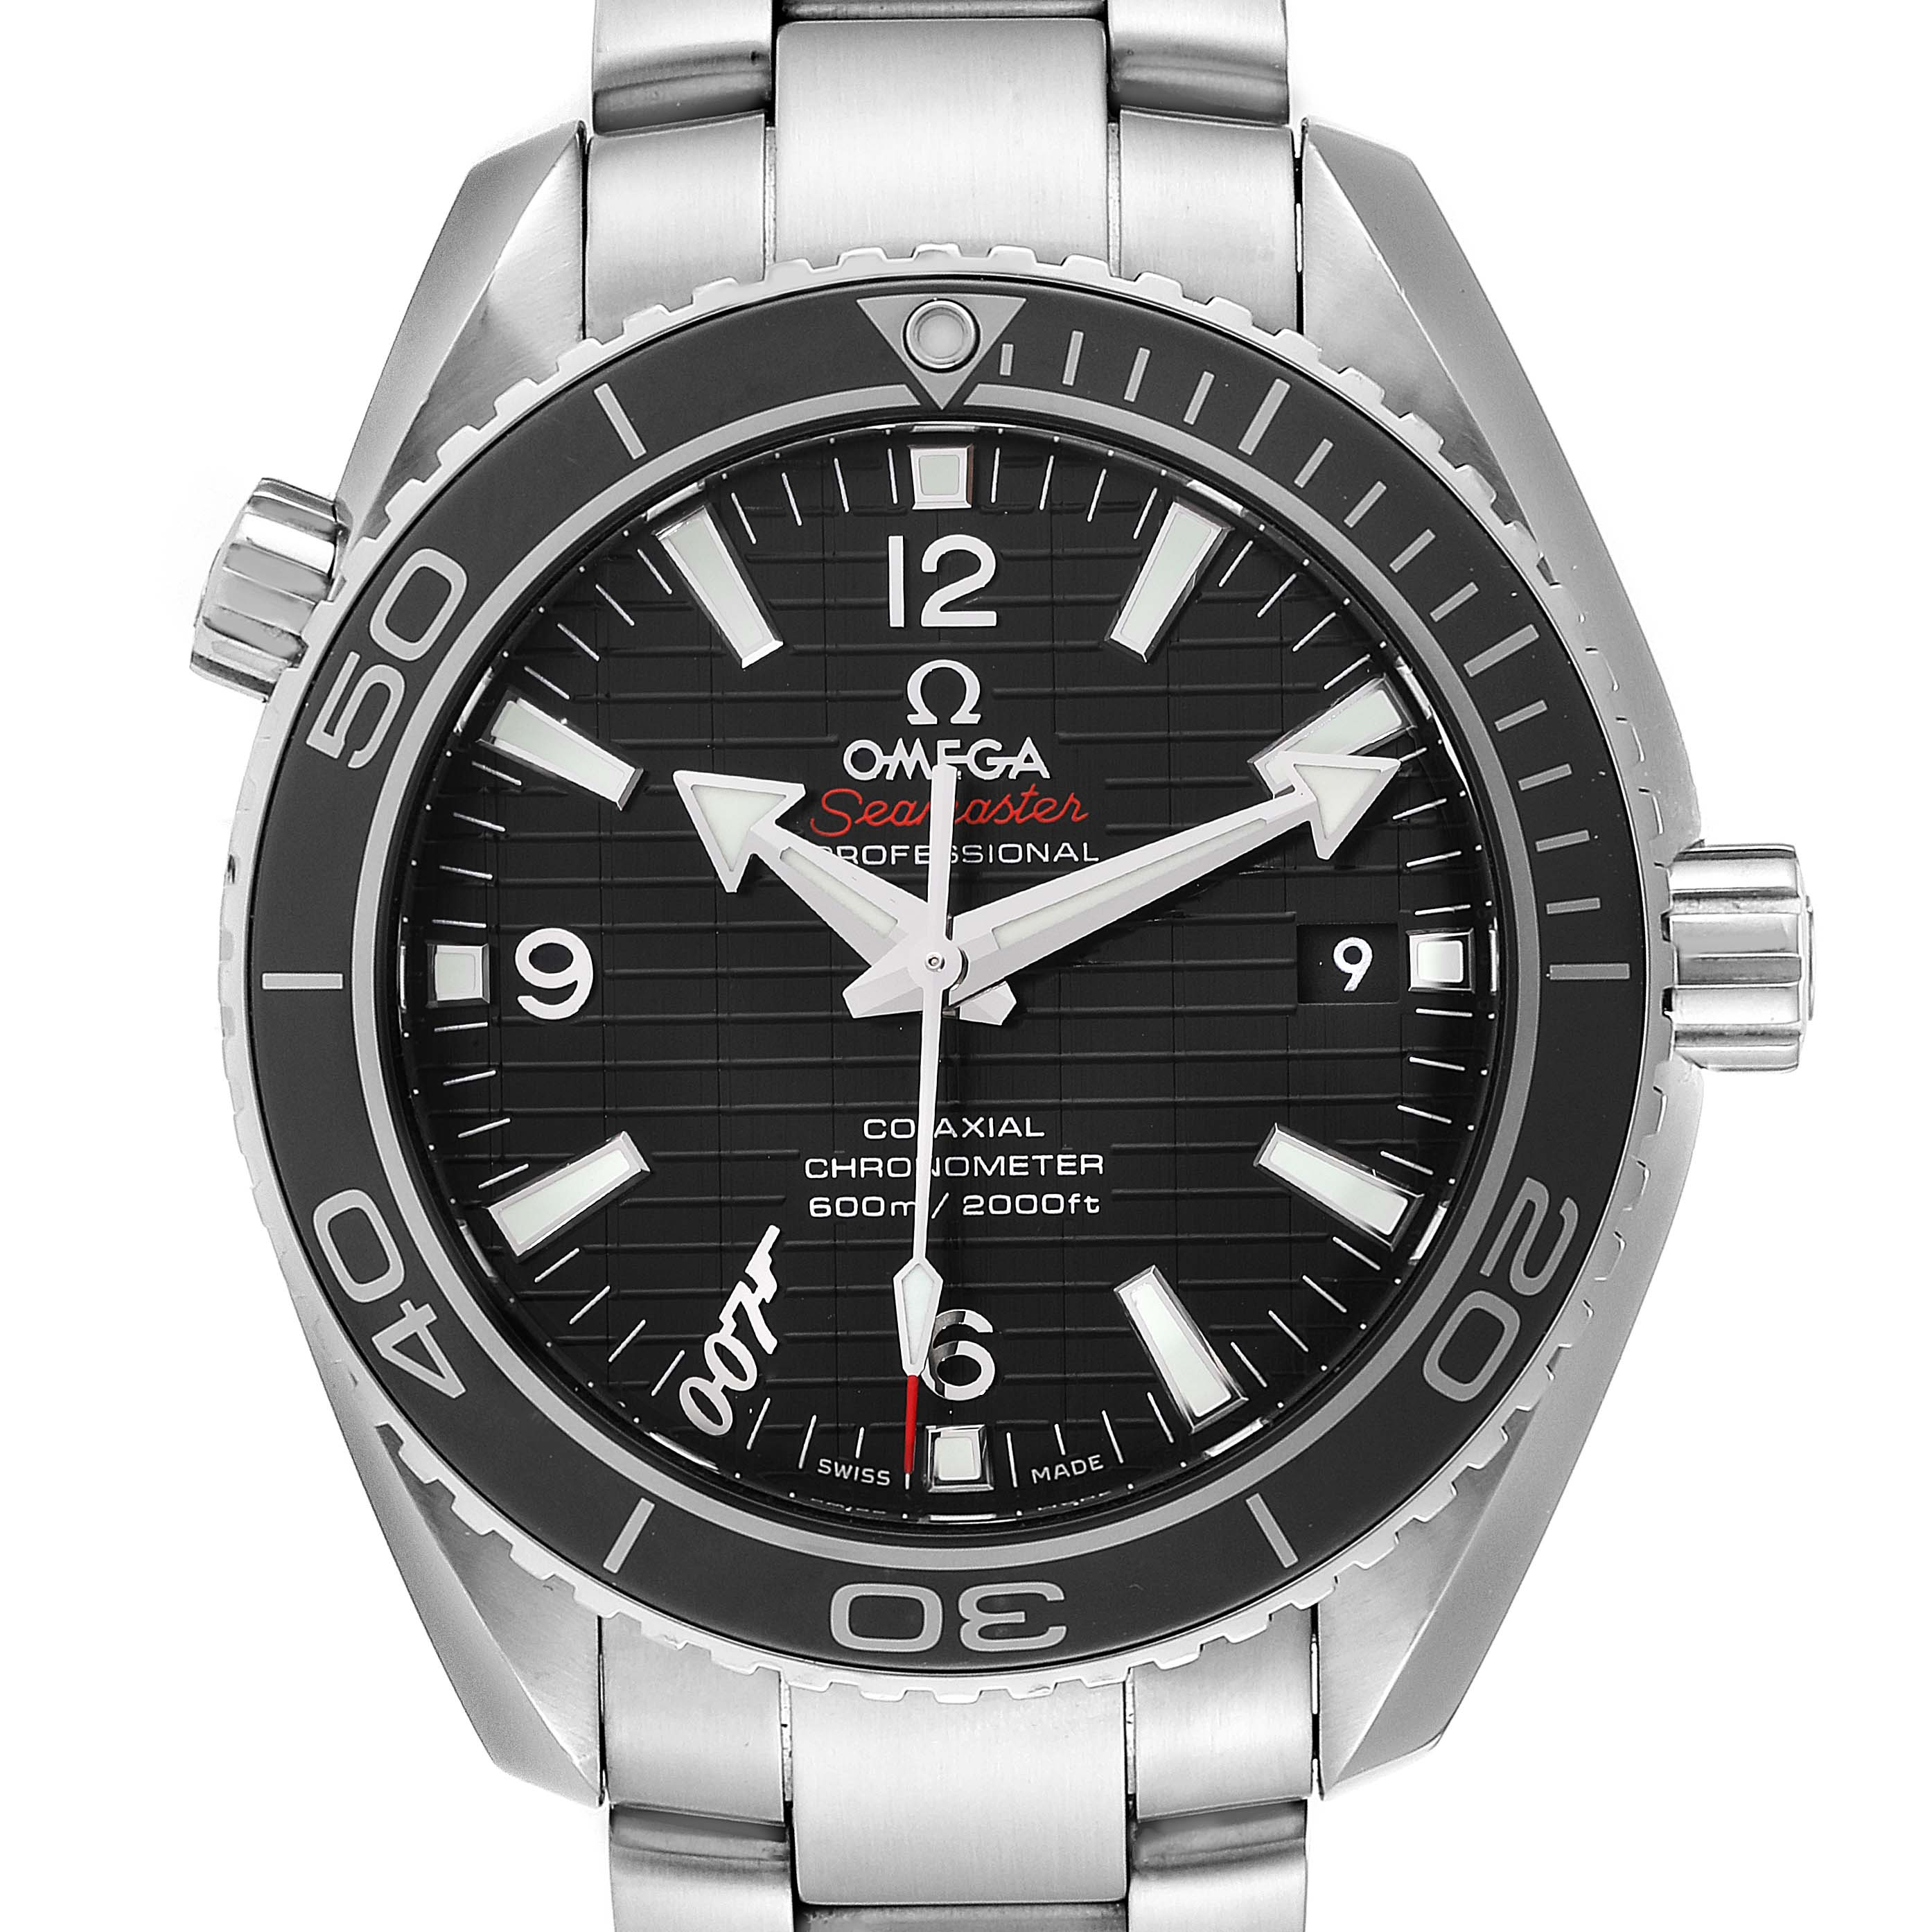 Photo of Omega Seamaster Planet Ocean Skyfall 007 LE Watch 232.30.42.21.01.004